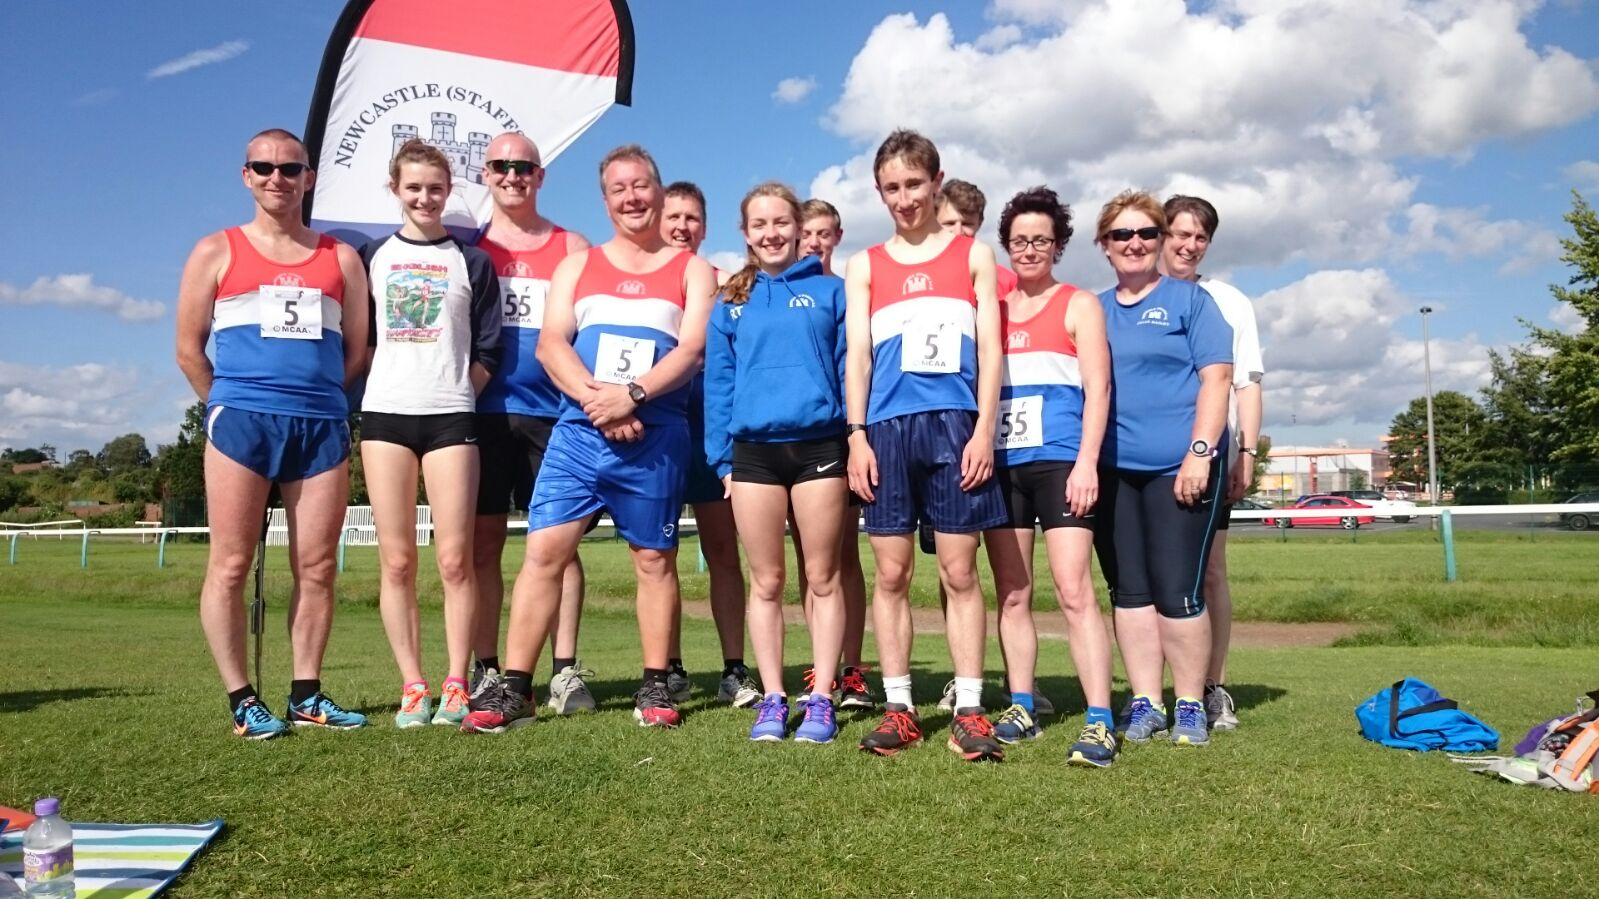 Midland Track & Field League at Hereford – 3/7/2016